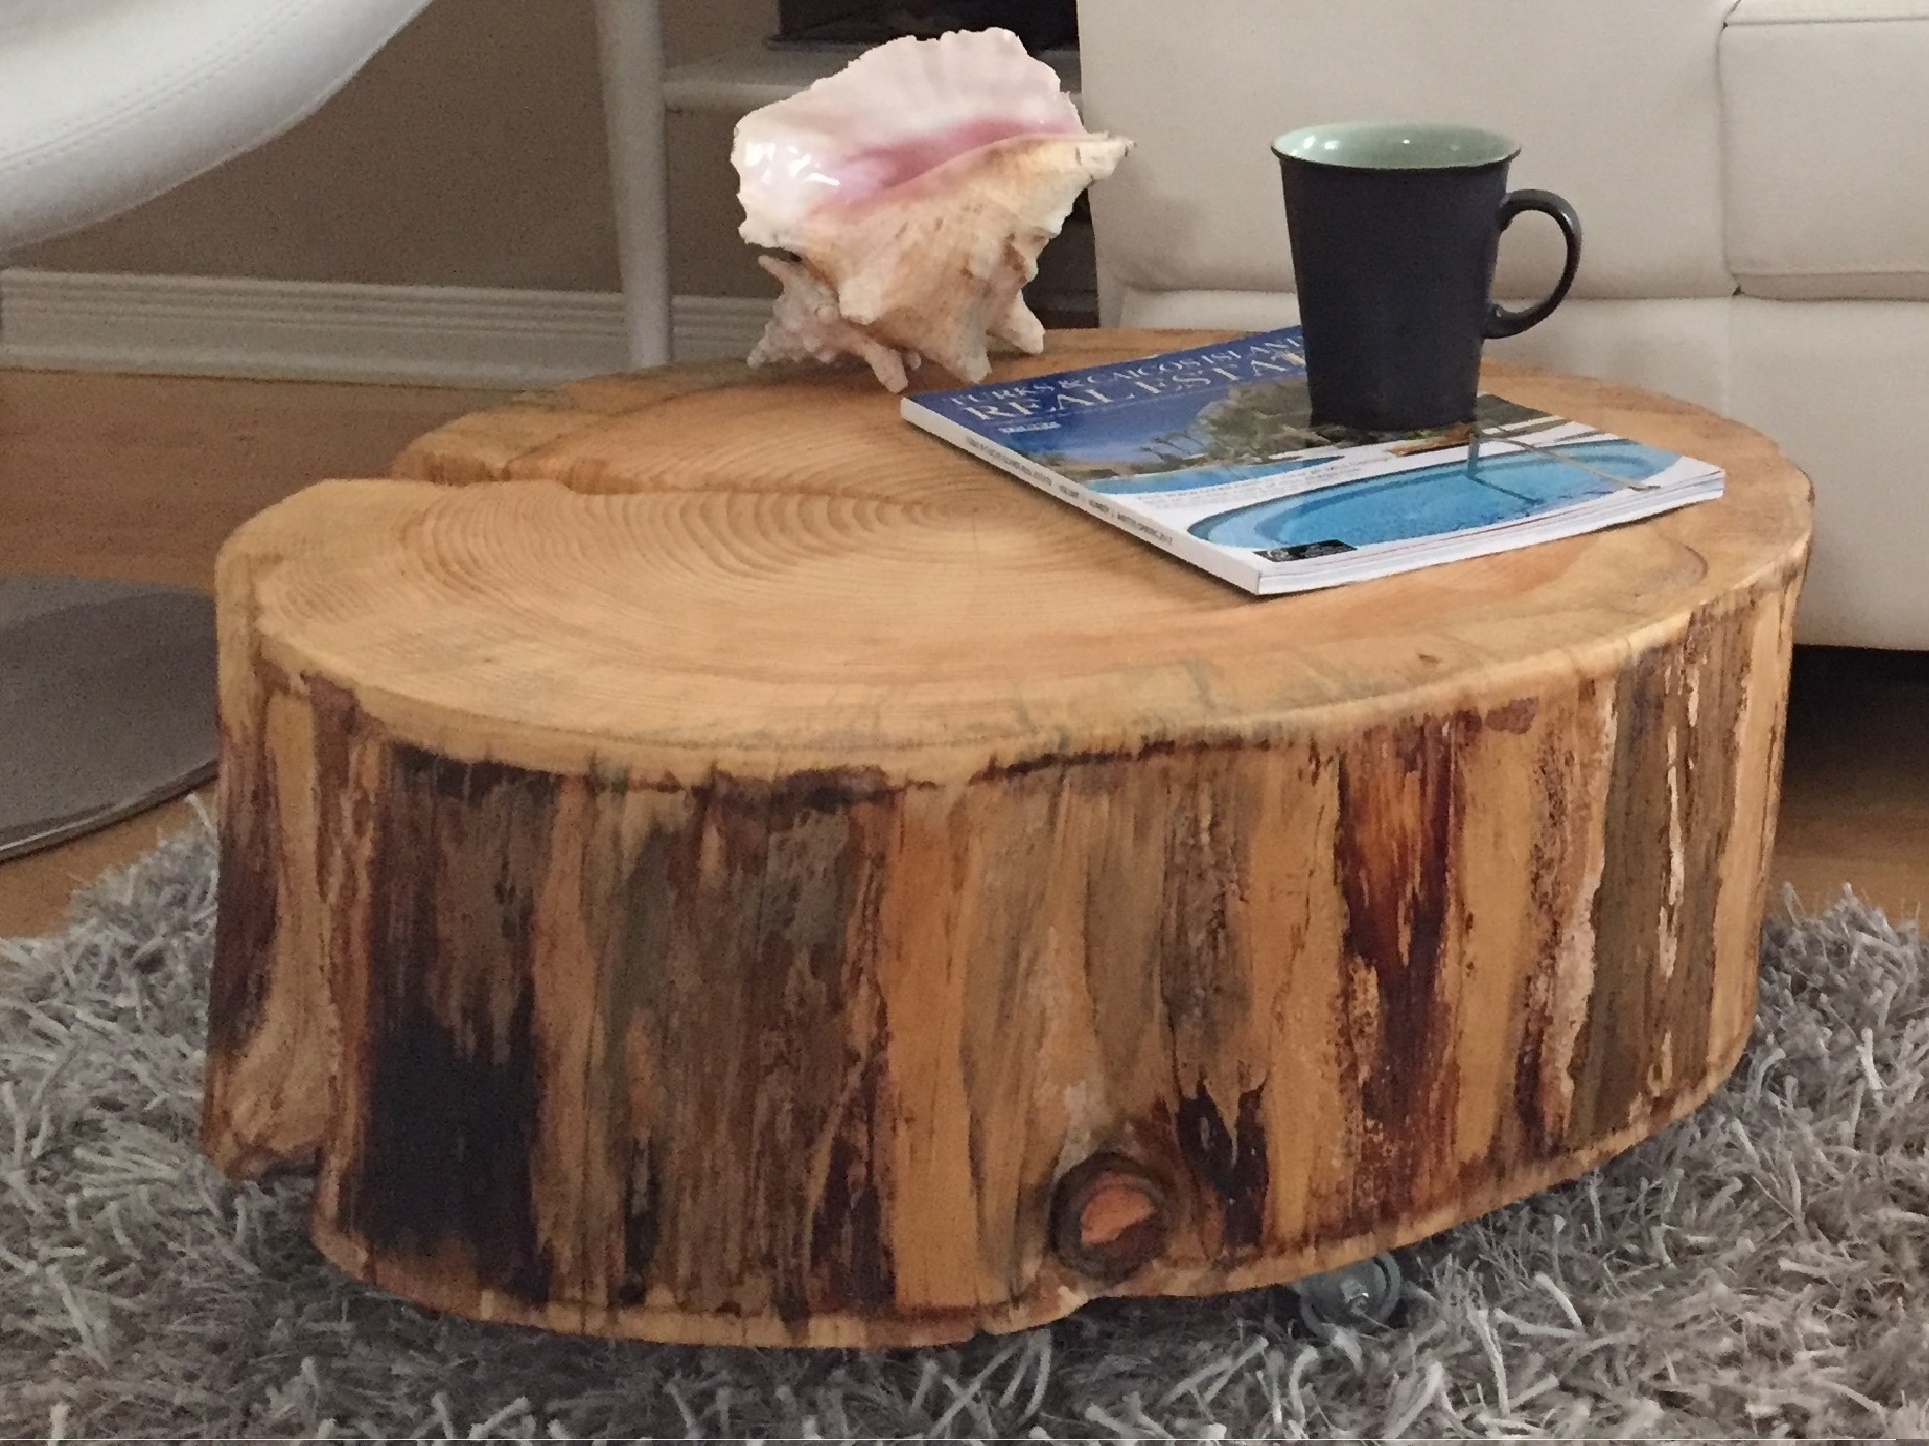 Serenity Stumps & Cutting Boards